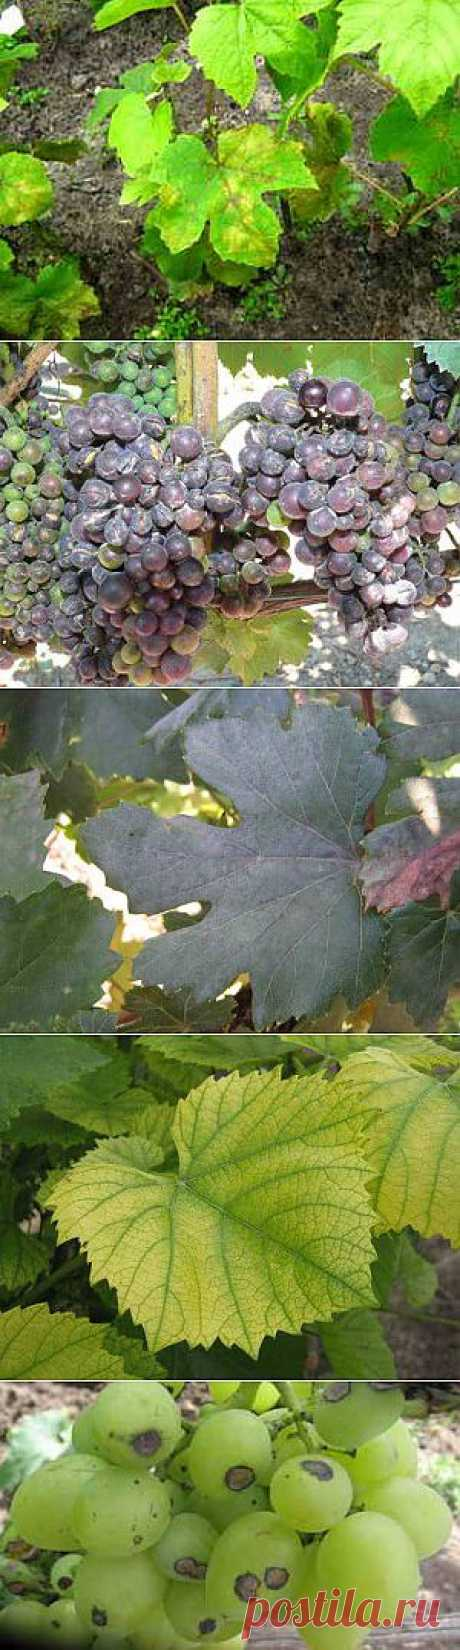 Fight against picture grapes diseases | Giving - for the future